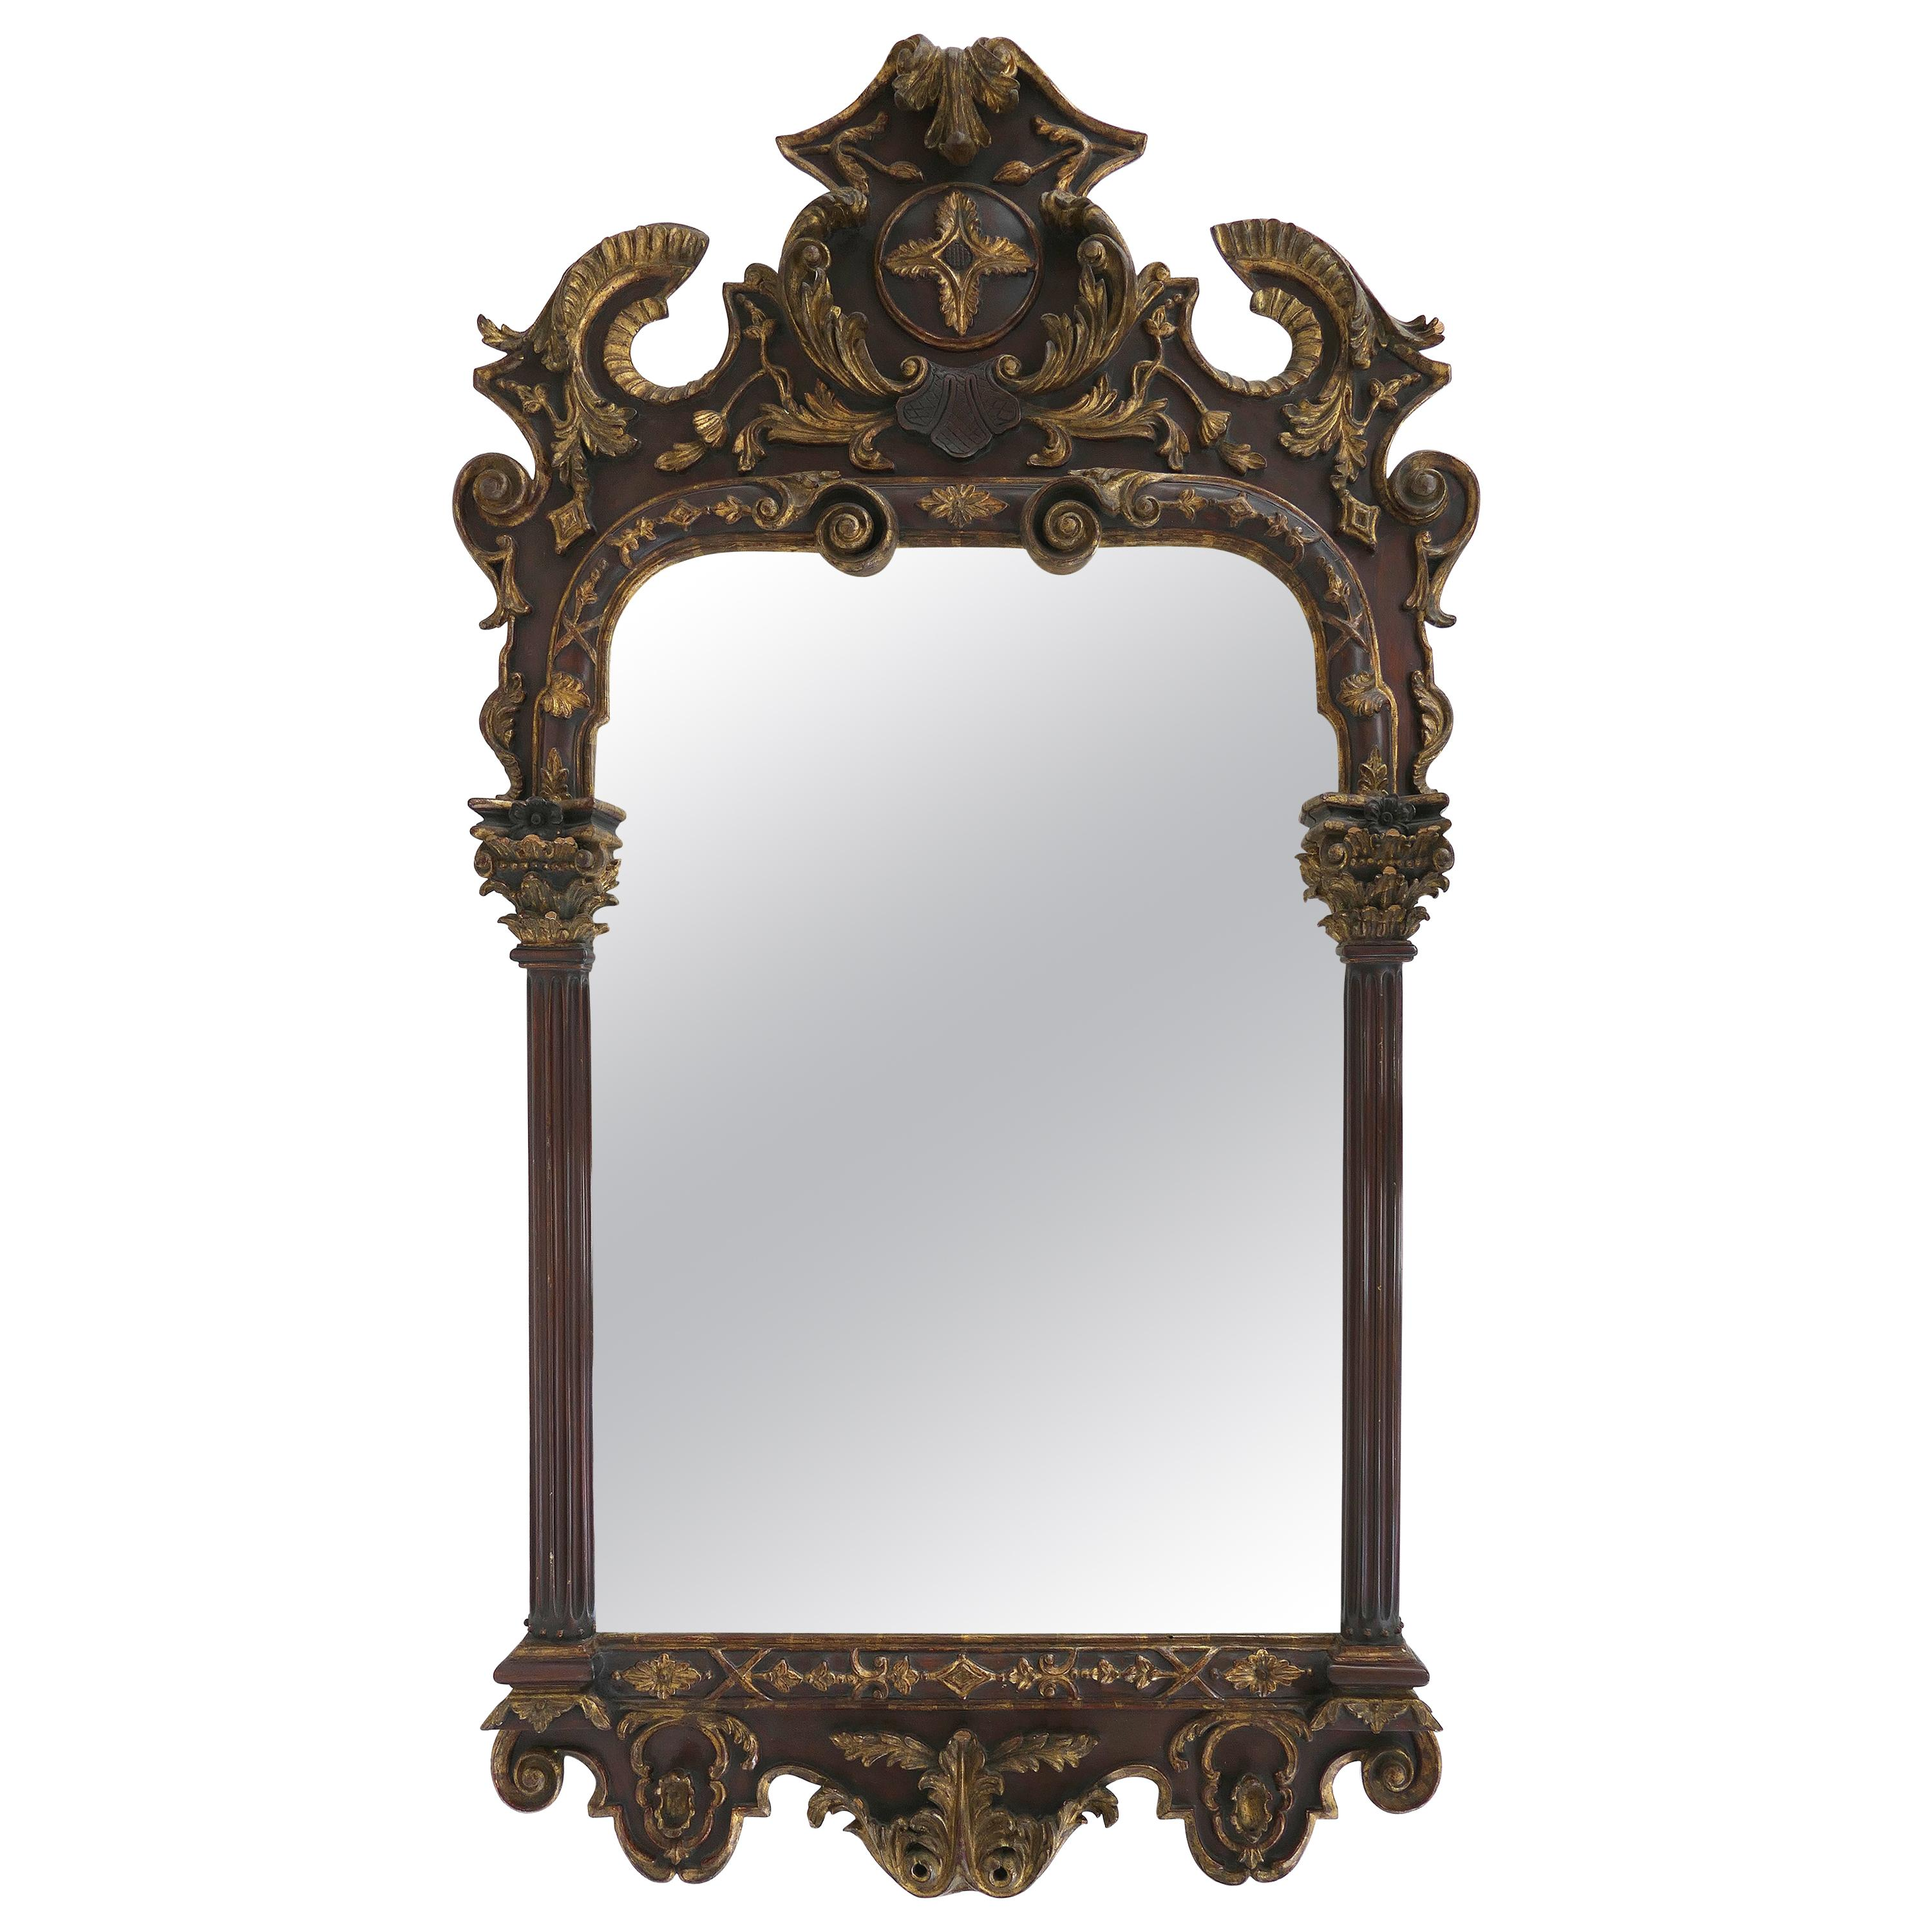 Carved Neoclassical Giltwood Mirror with Corinthian Columns and Acanthus Leaves